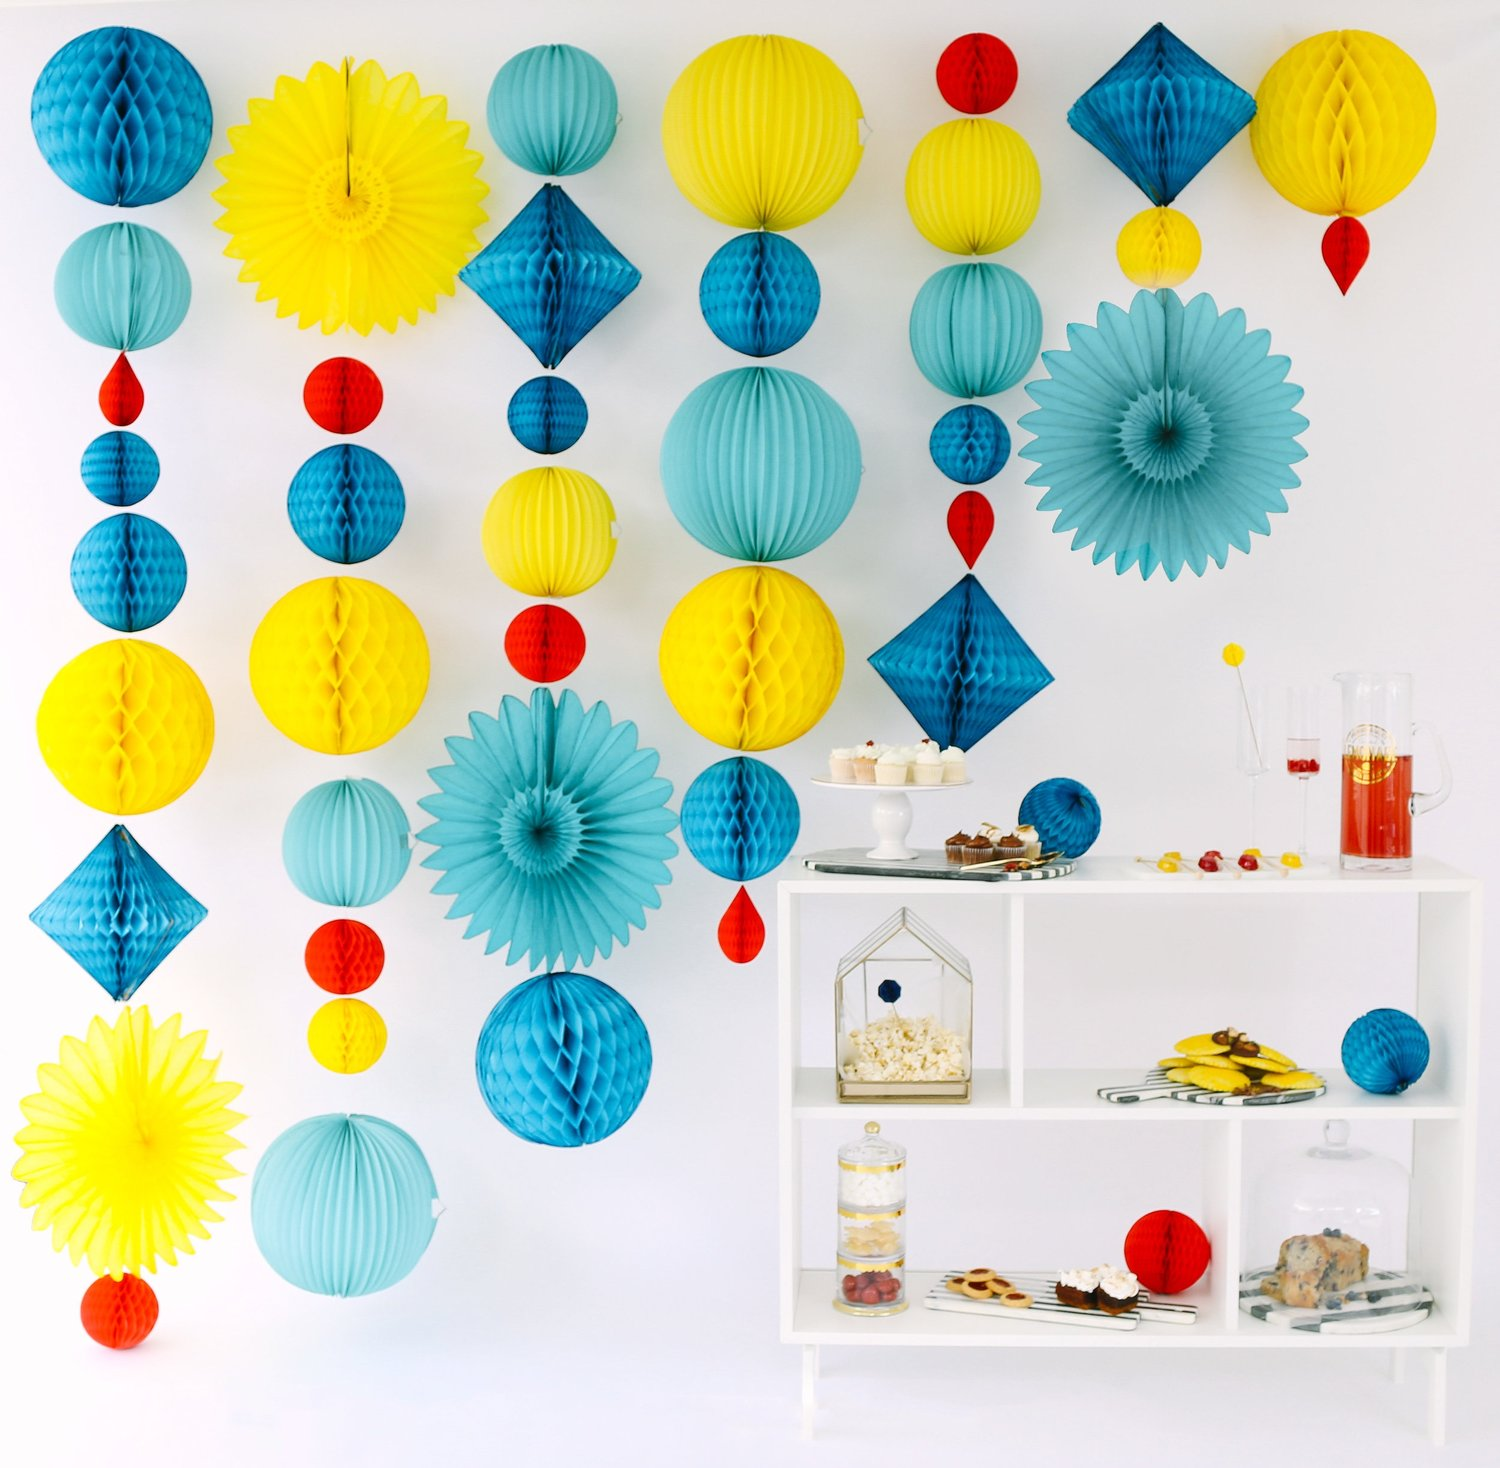 Lantern Honeycomb Garland and Food Table from Mod Color Party Styled by Tinseldot | Black Twine